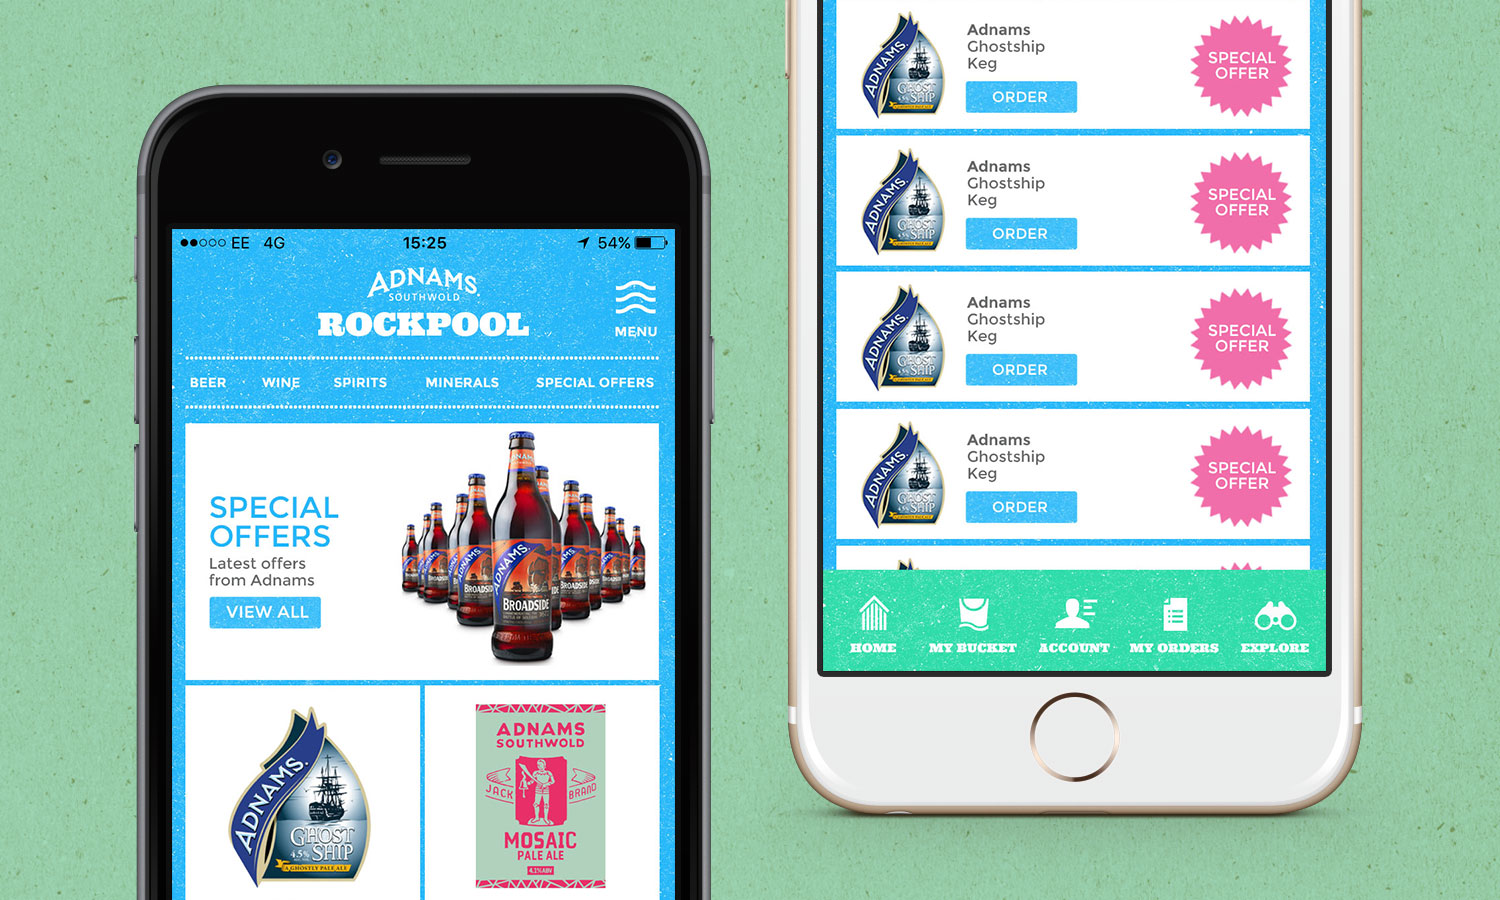 iphone-mobile-designs-for-app-screens-adnams-brewery-1.jpg